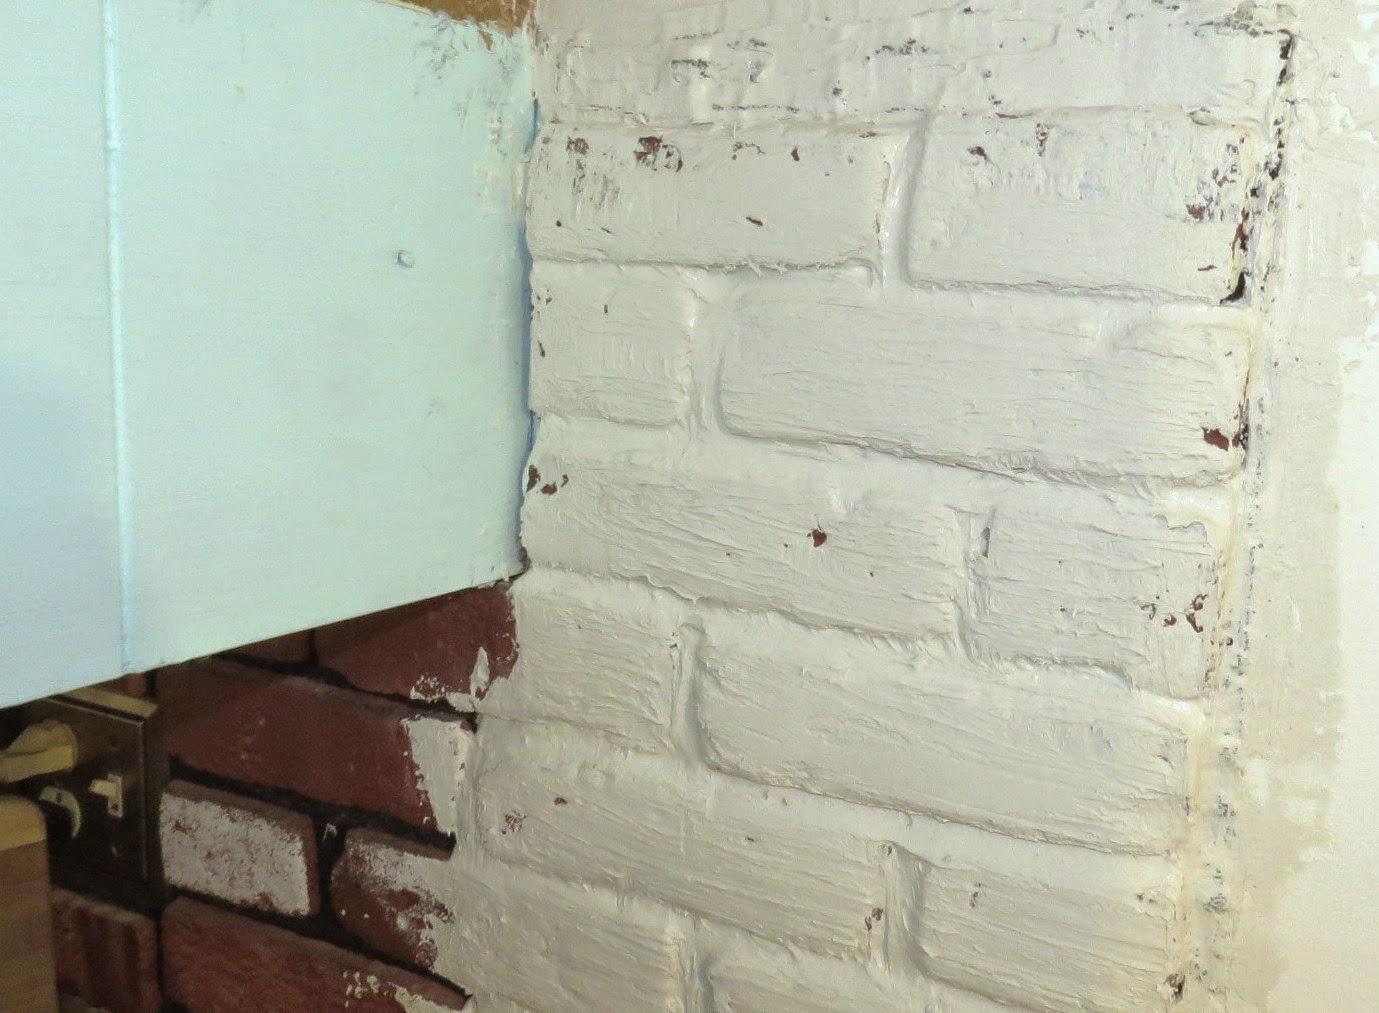 It Is Used For Mortaring And Brick And Patching It Is A Do It All Joint Compound We Covered The Entire Veneer With It And Made The Bricks A Little More